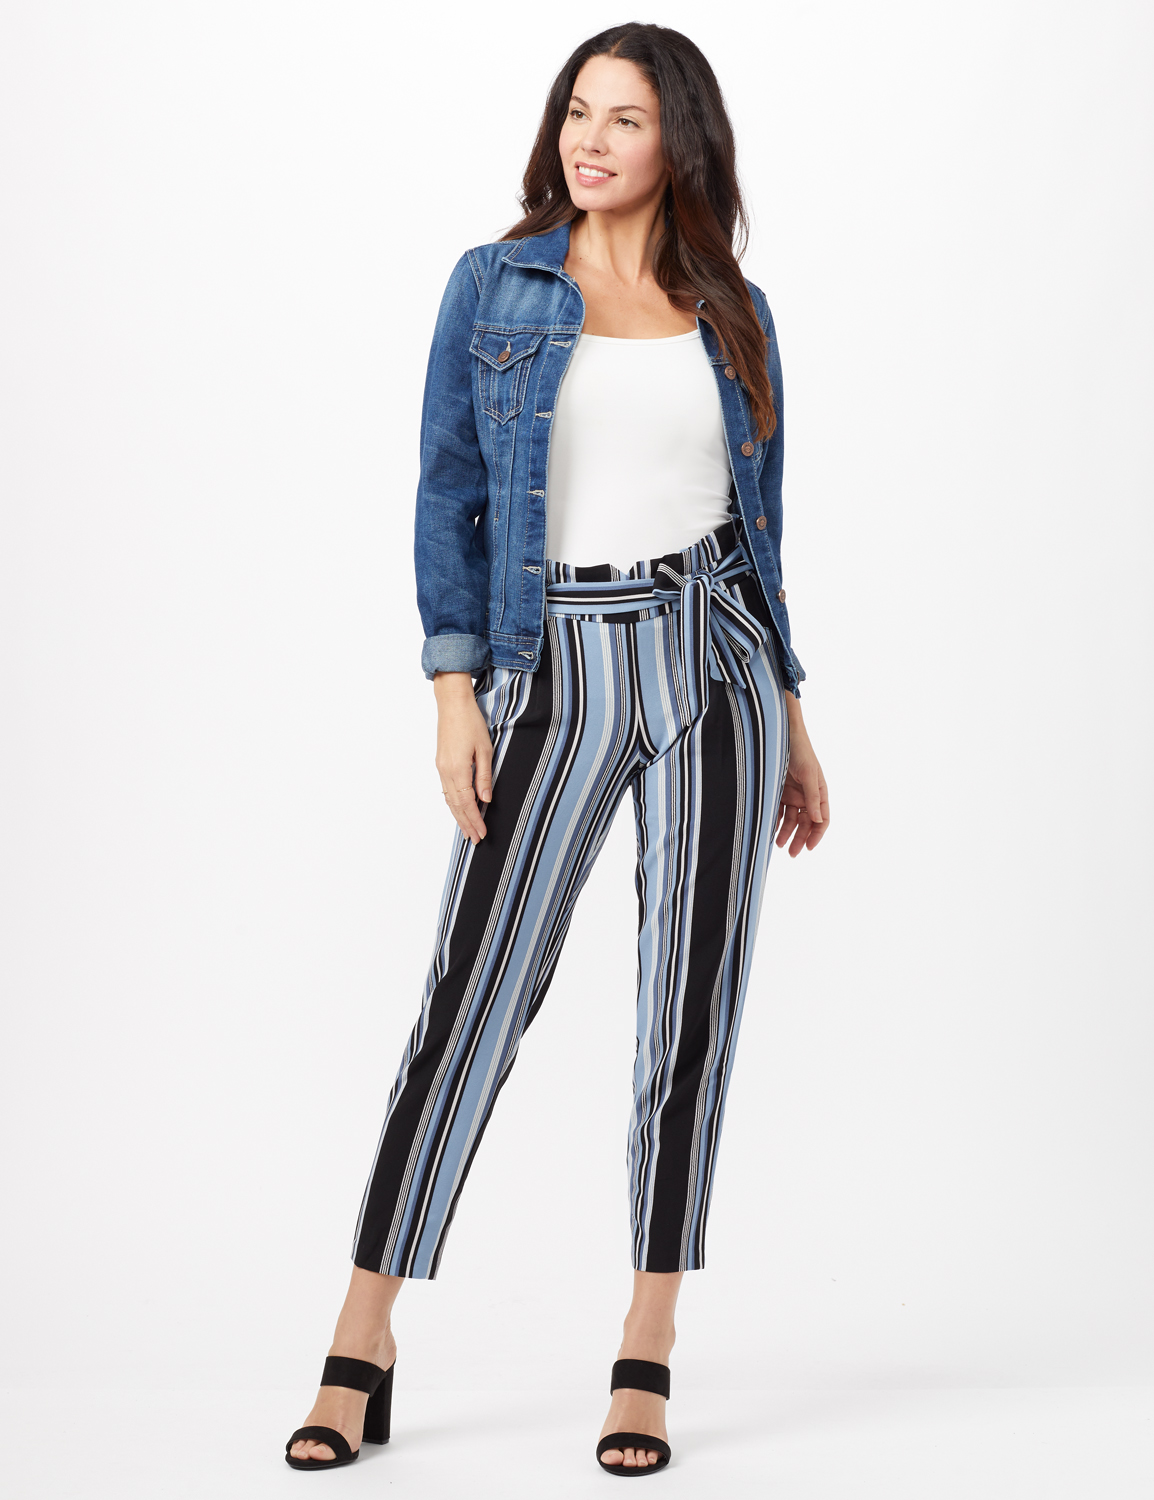 Stripe Pull-On Pants with Tie Waist - Blue/Black - Front